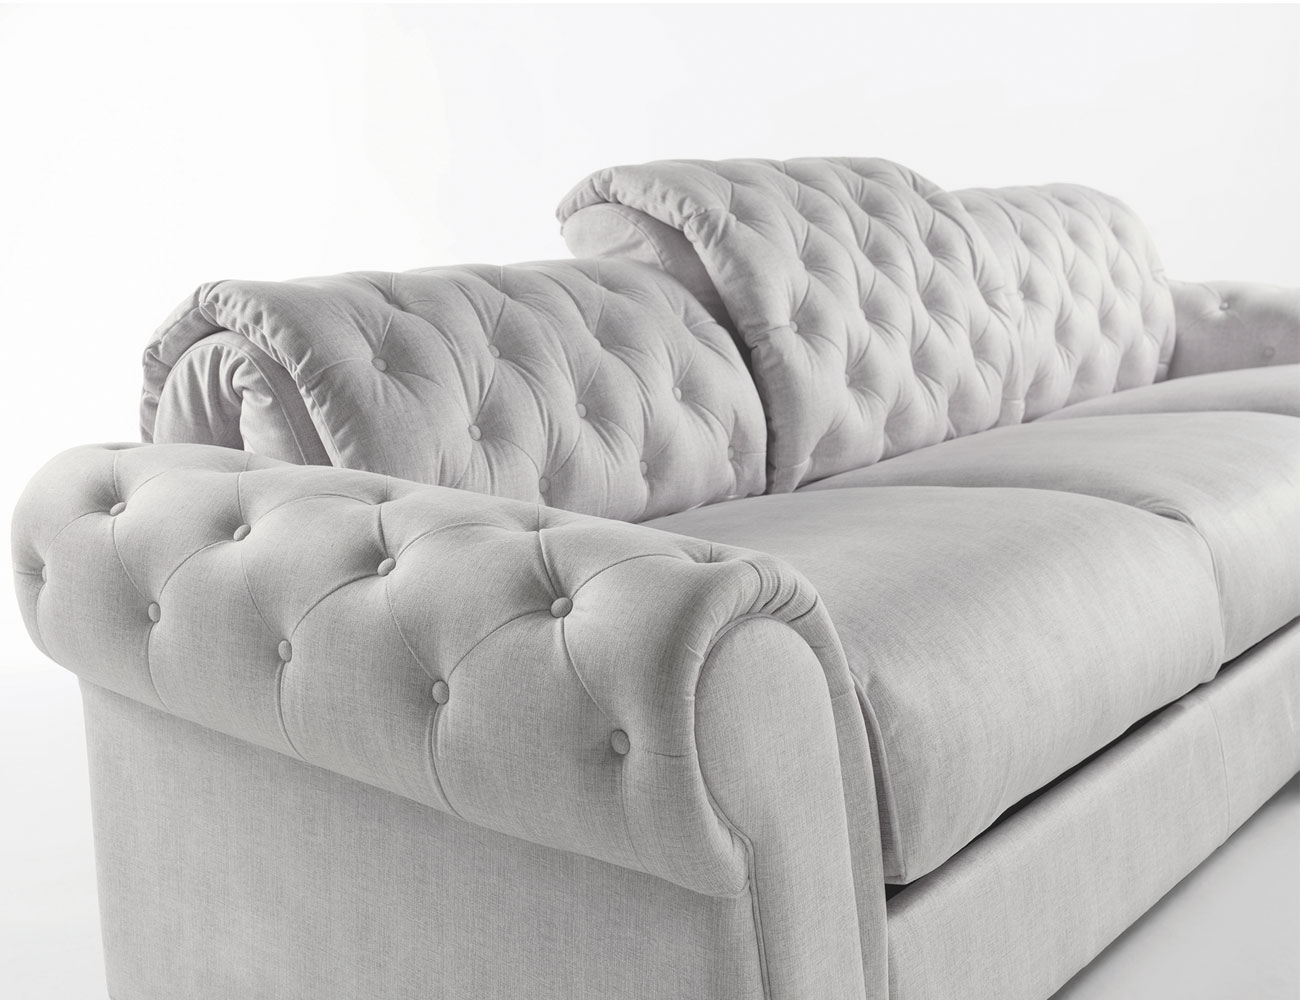 Sofa chaiselongue gran lujo decorativo capitone blanco tela 111